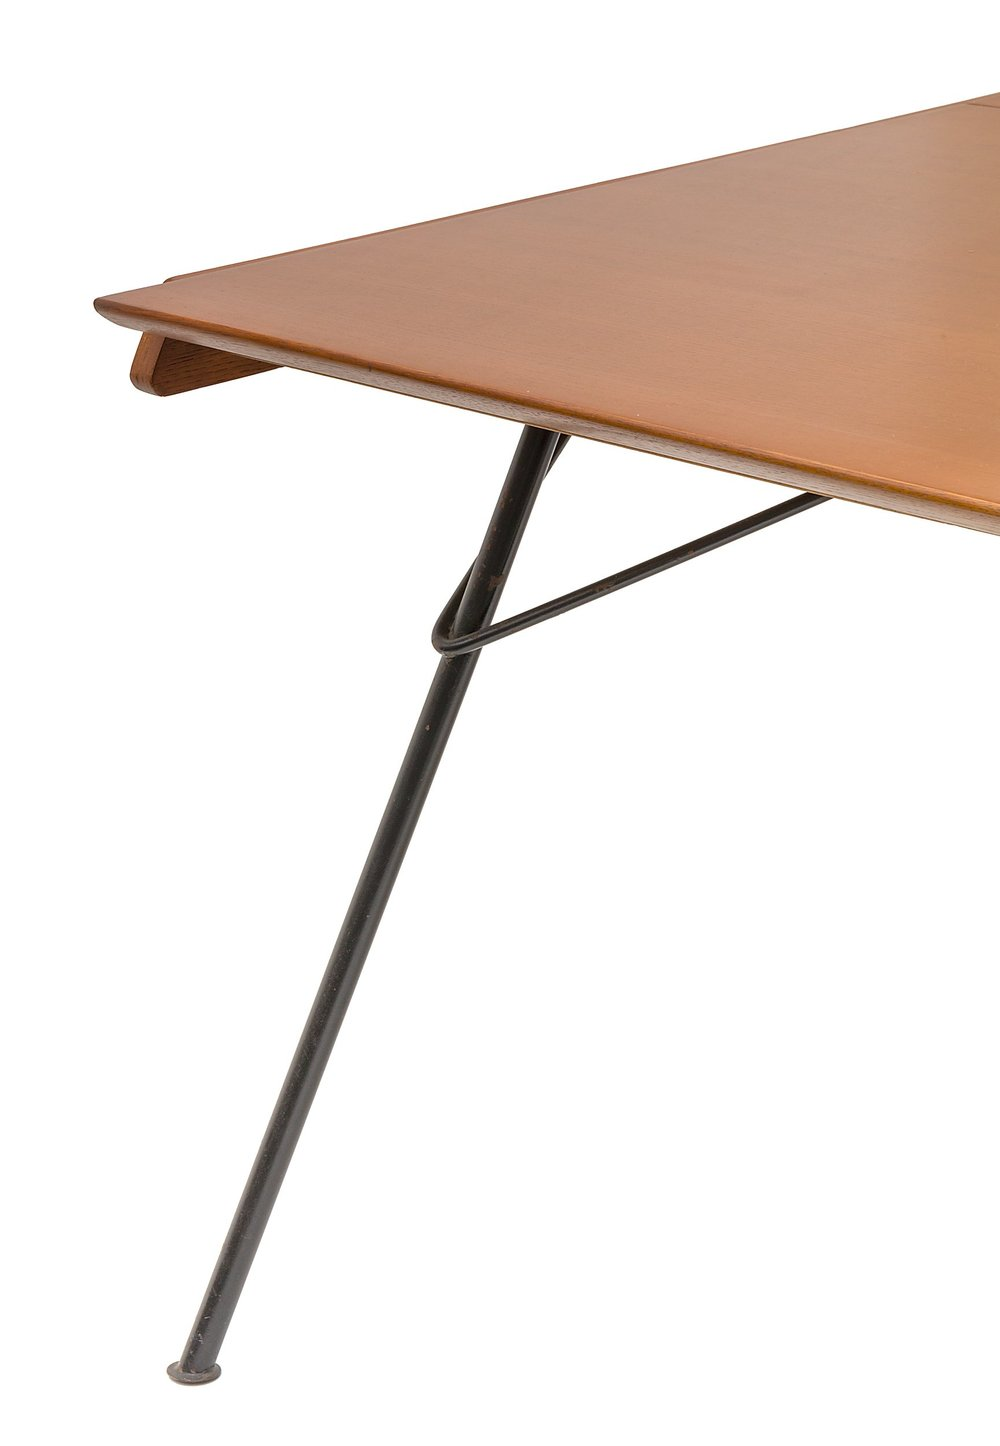 French_Dining_Table_G_org.jpg